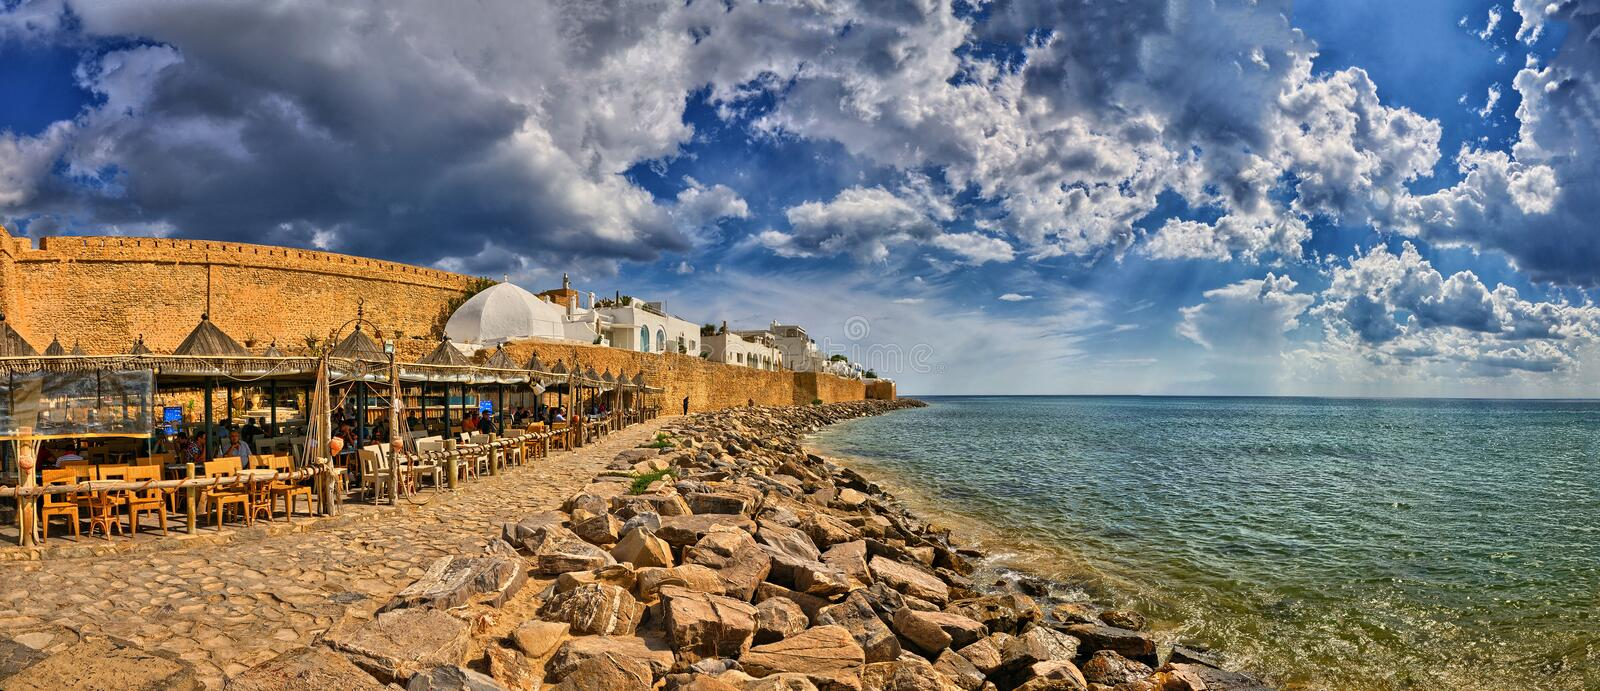 HAMMAMET, TUNISIA - OCT 2014: Cafe on stony beach of ancient Med. Ina on October 6, 2014 in Hammamet, Tunisia royalty free stock photography